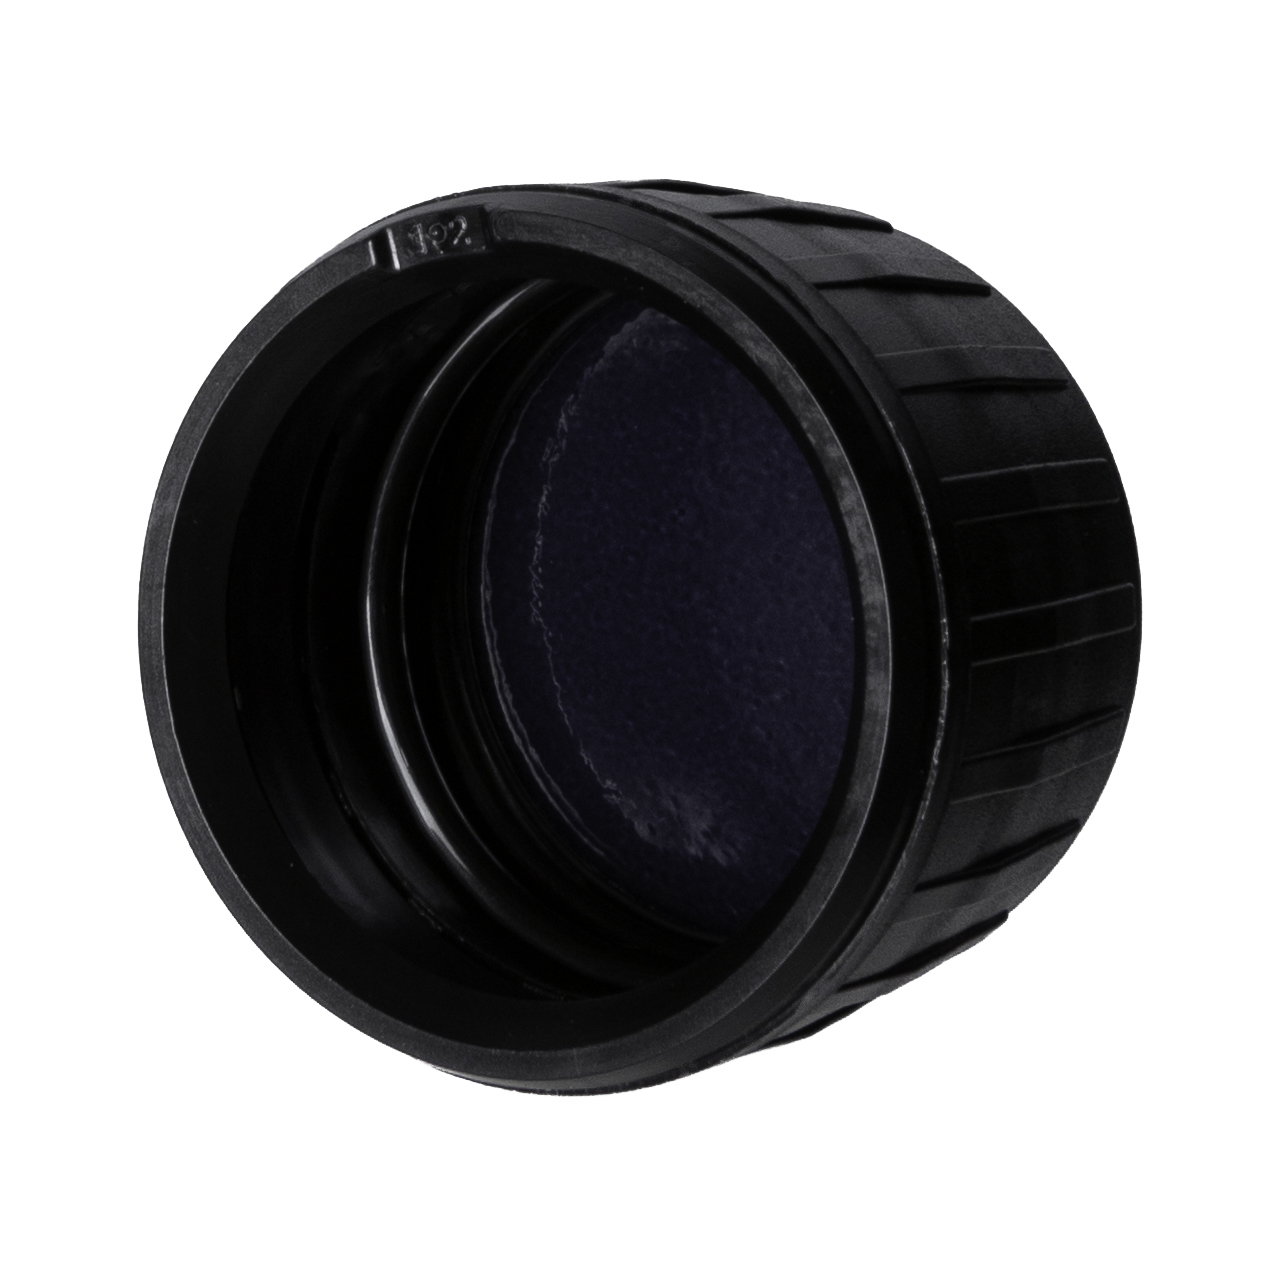 Tamper-evident closure 28ROPP, series III, PP, black, ribbed with violet Phan inlay (for Aquarius & Aguila)